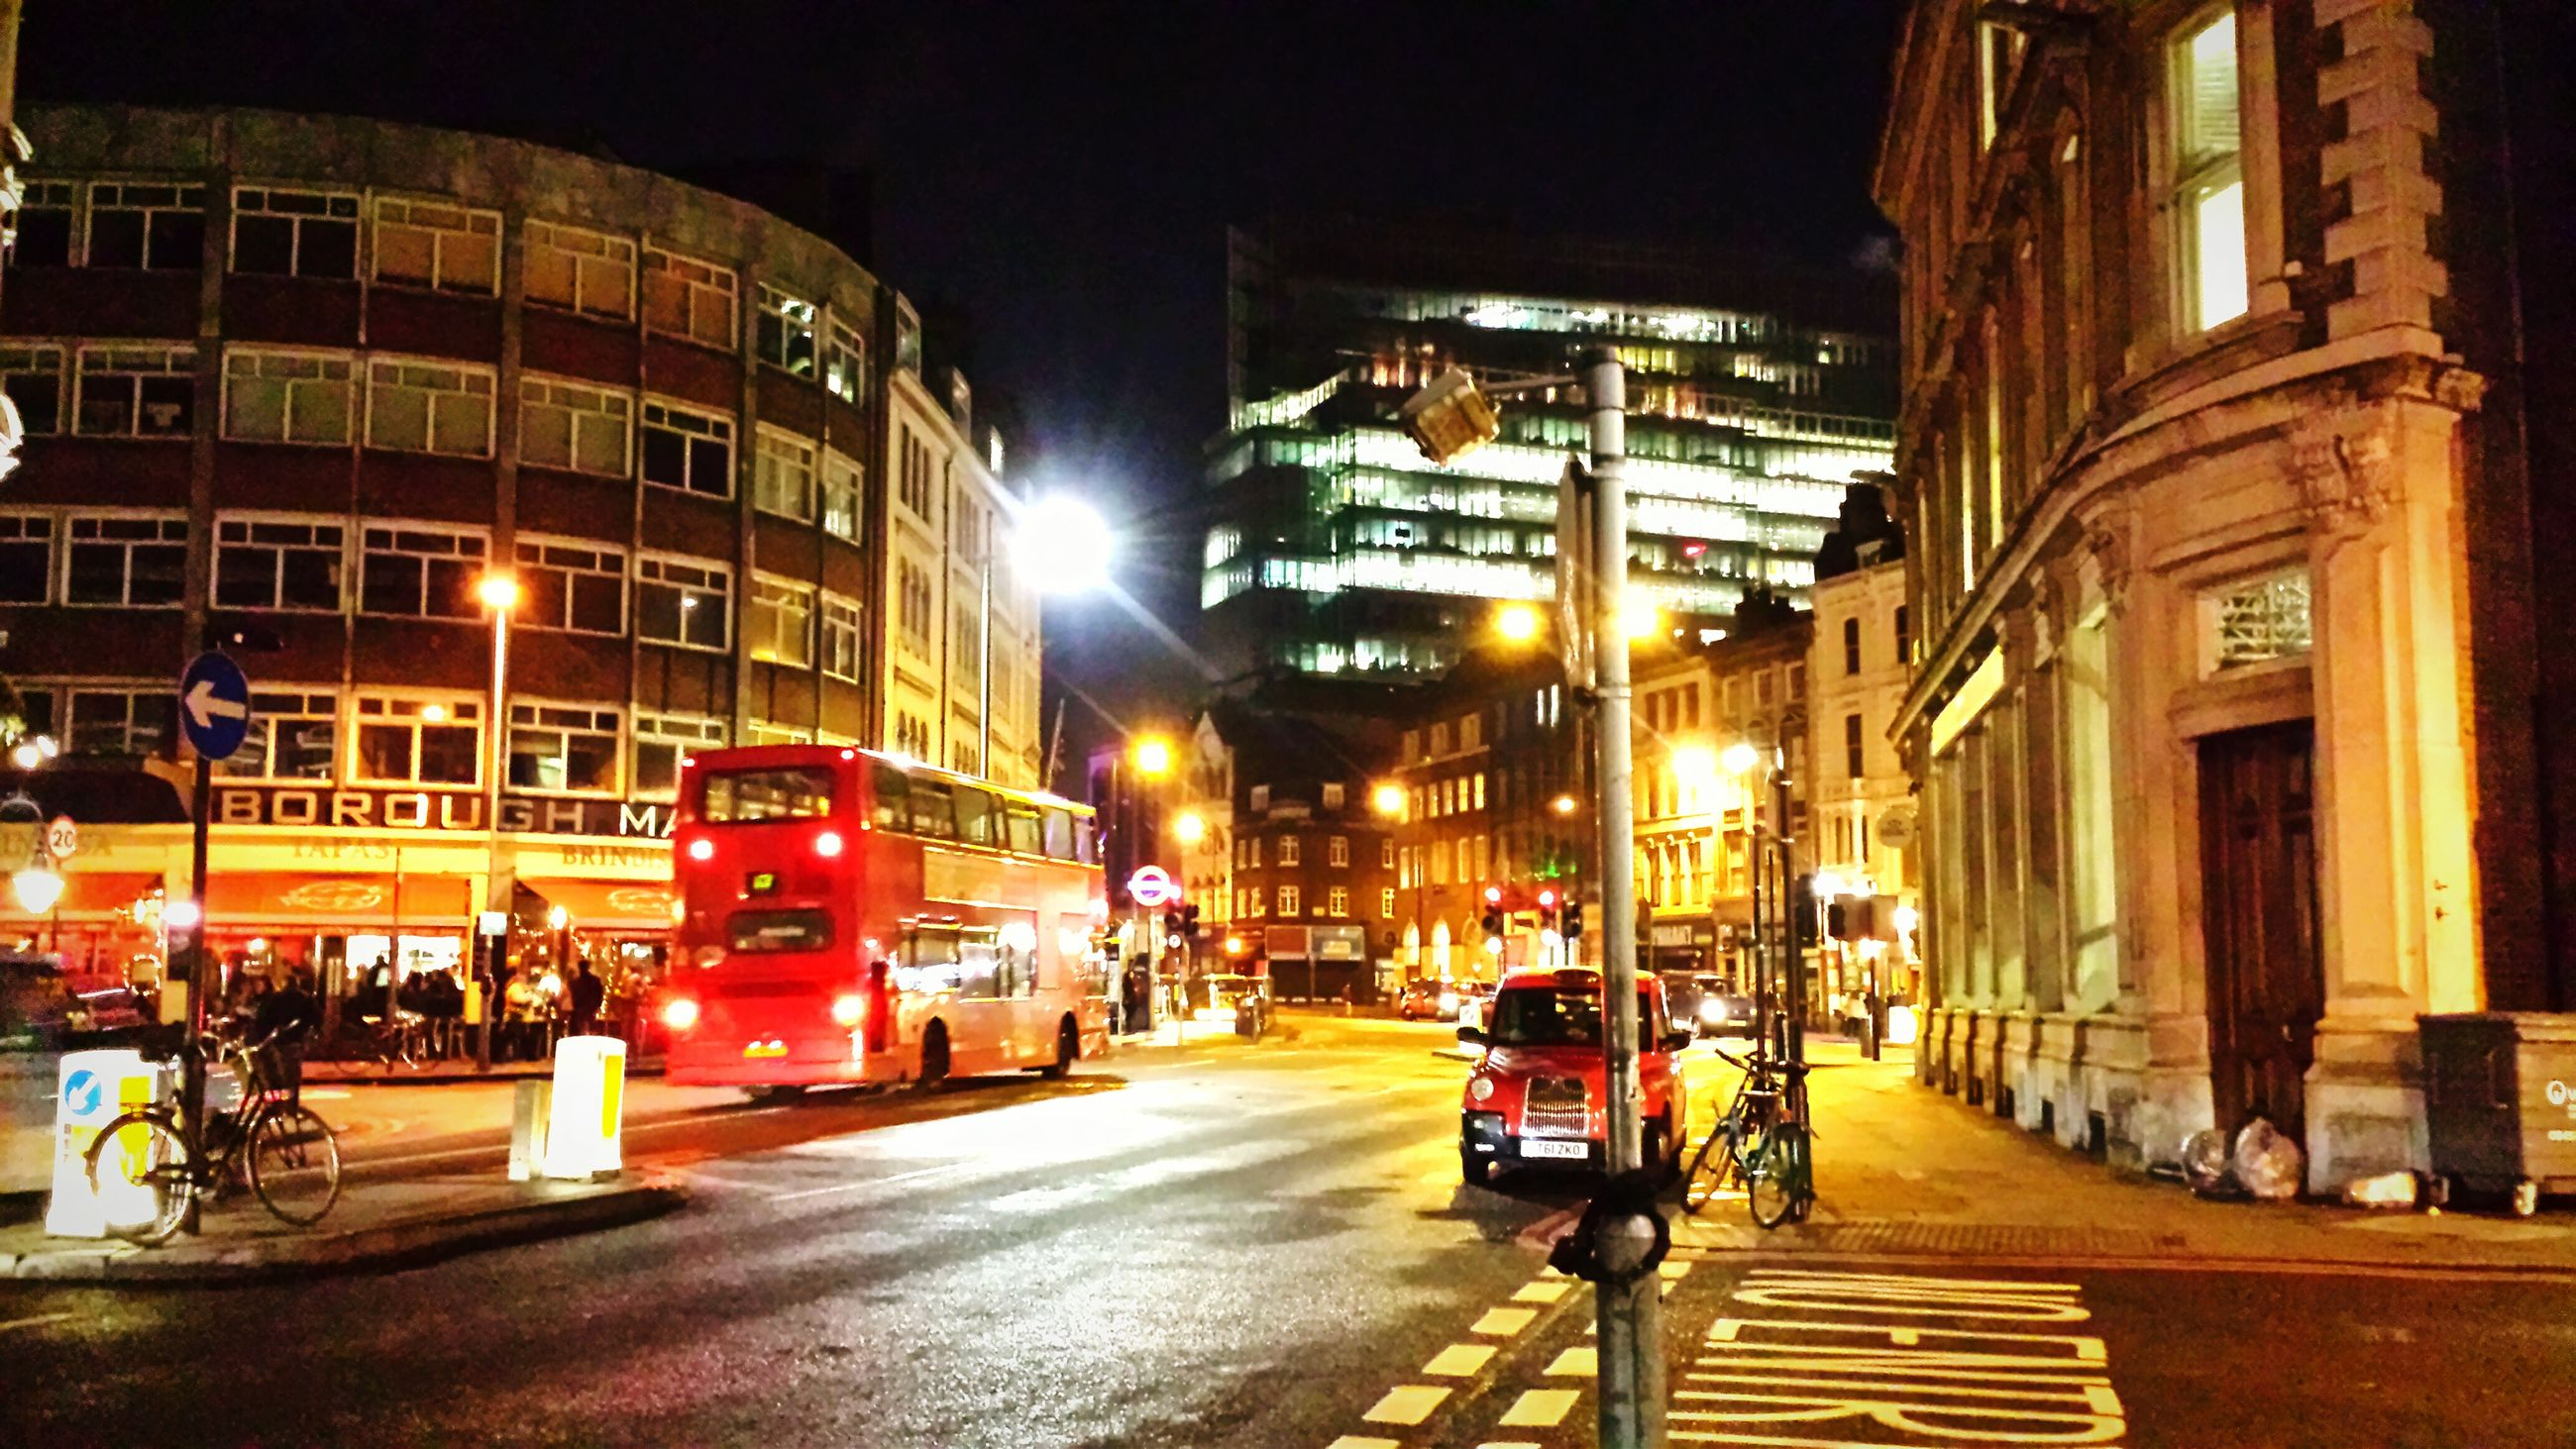 building exterior, architecture, built structure, city, illuminated, street, transportation, night, car, land vehicle, city life, mode of transport, city street, road, incidental people, the way forward, building, street light, men